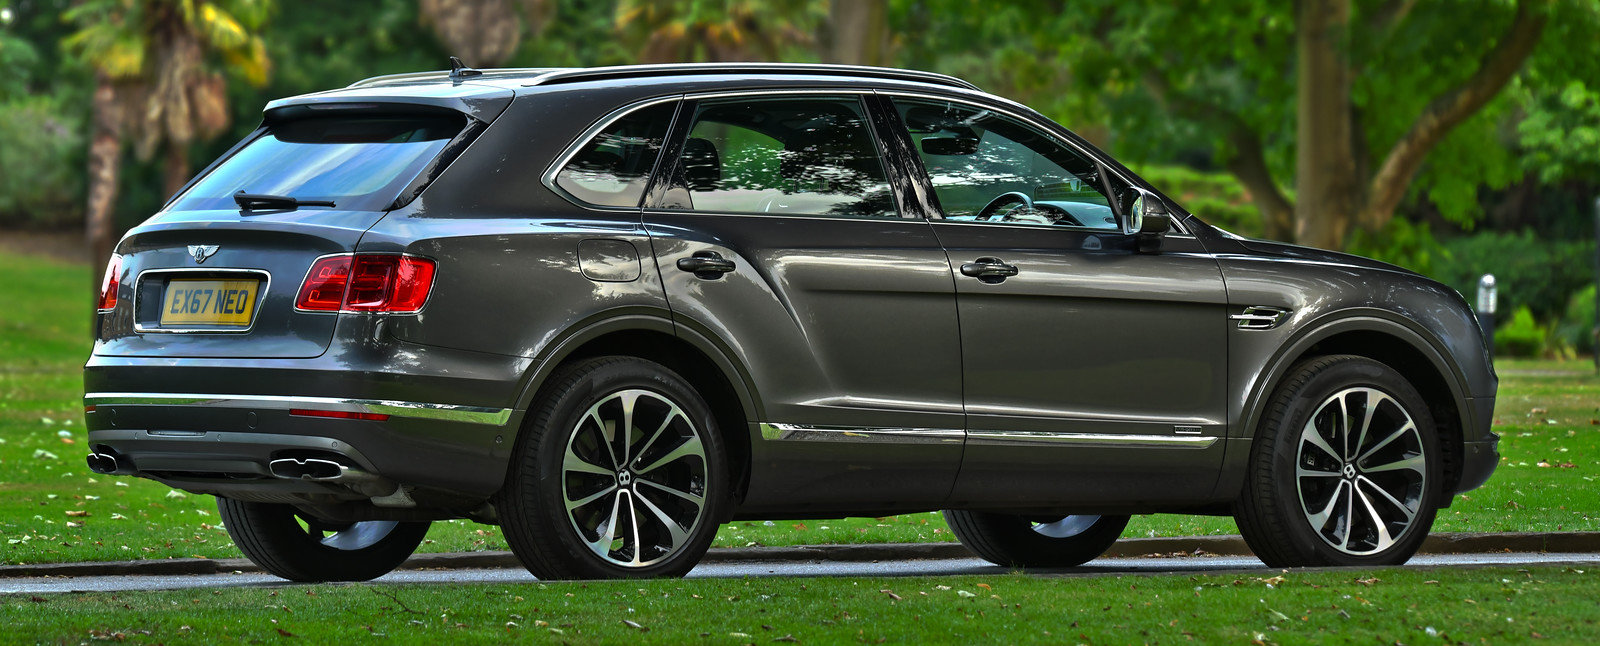 2017 Bentley Bentayga 4.0 Twin Turbo V8 Diesel 4x4 For Sale (picture 3 of 6)